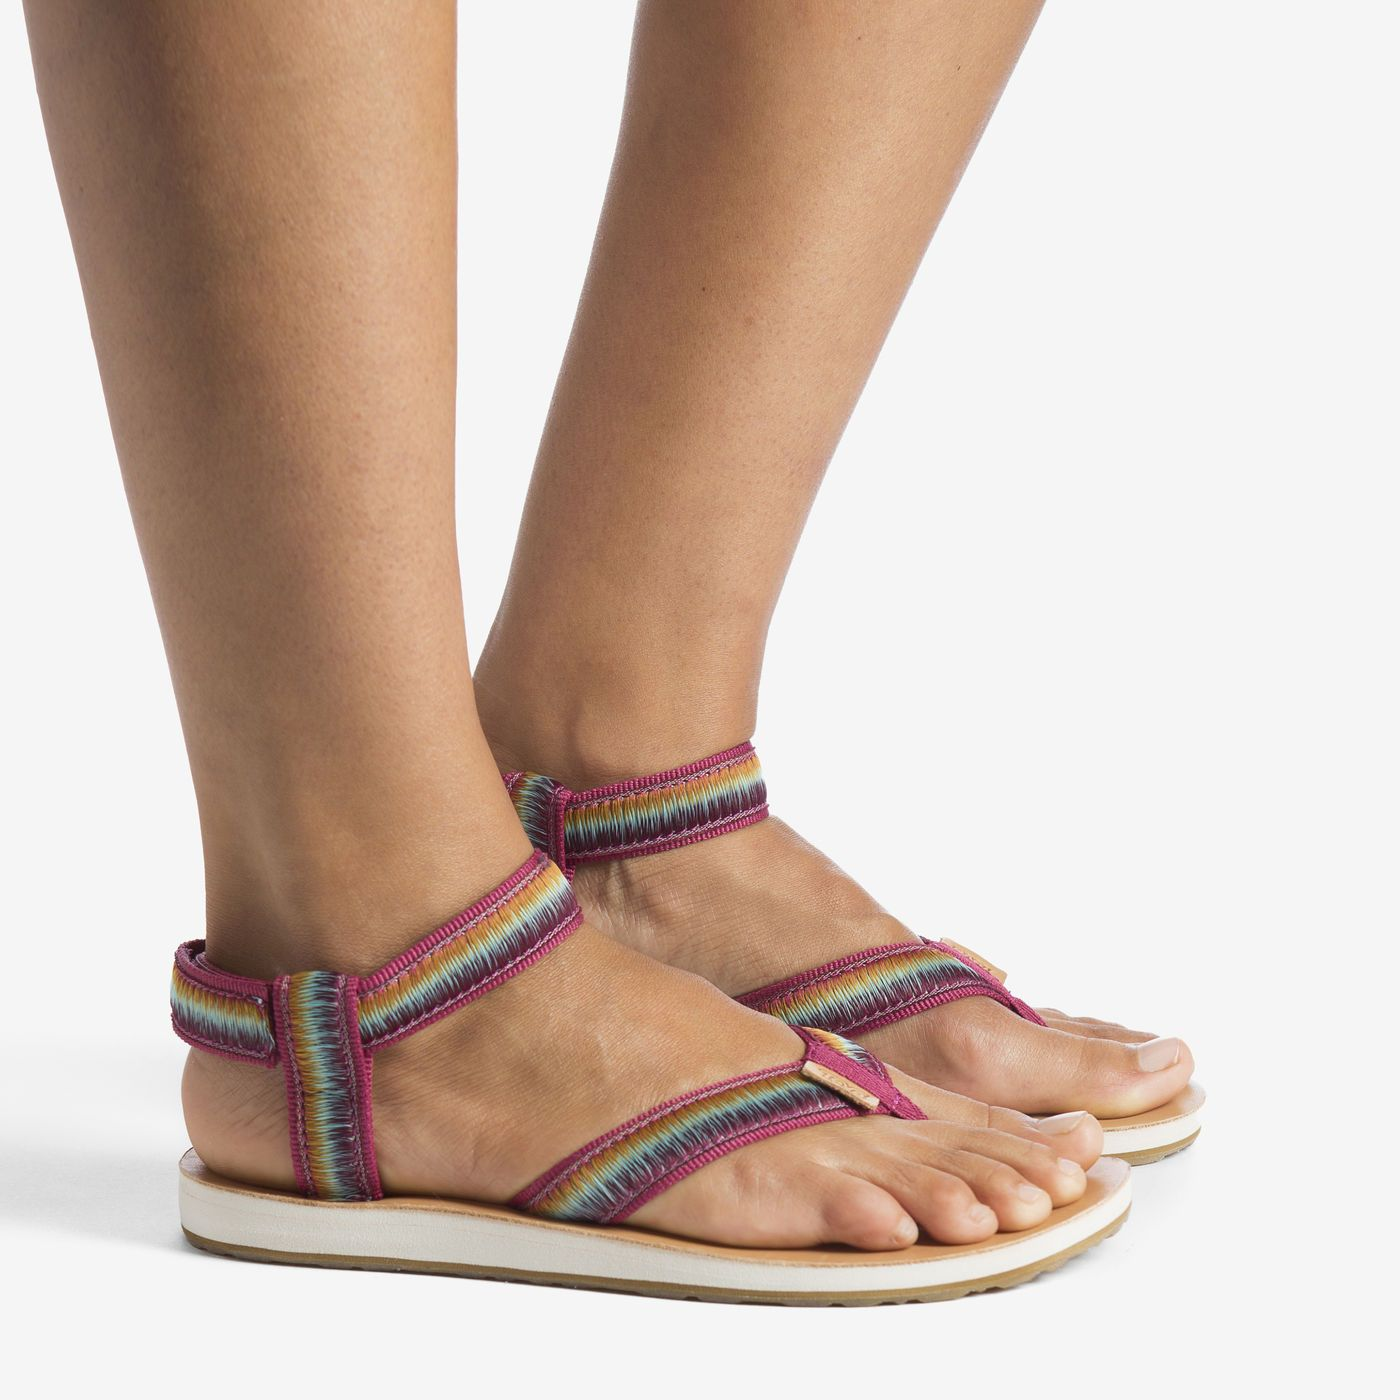 3d47c800738f Free Shipping   Free Returns on Authentic Teva® Women s Original Sandal  Ombre sandals - Elderberry. Shop our collection of sandals for women at  Teva.com